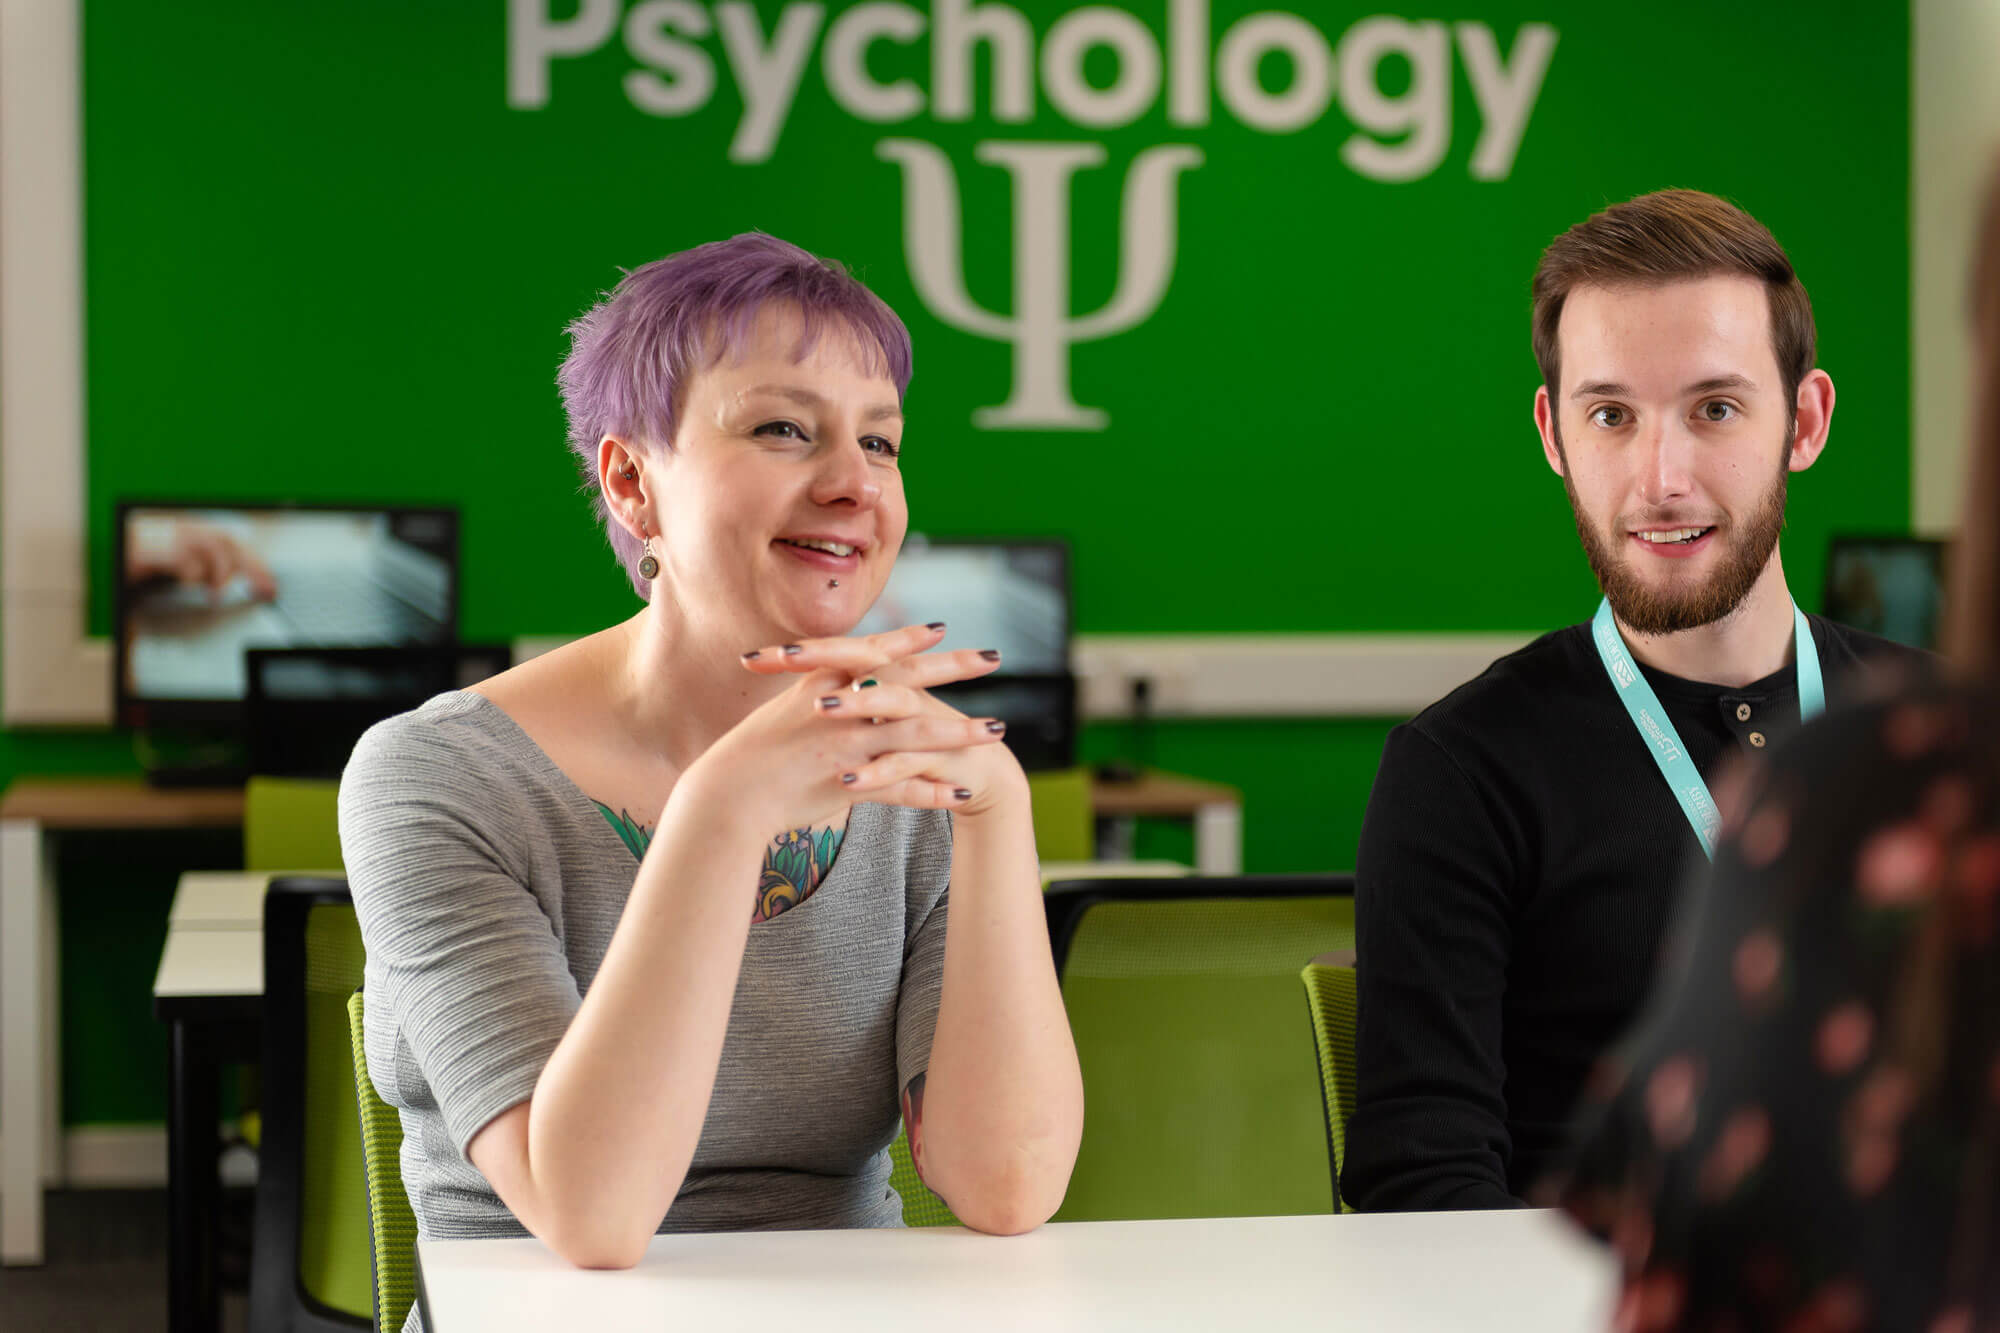 Lady and gentleman set at a desk with a Psychology backdrop poster